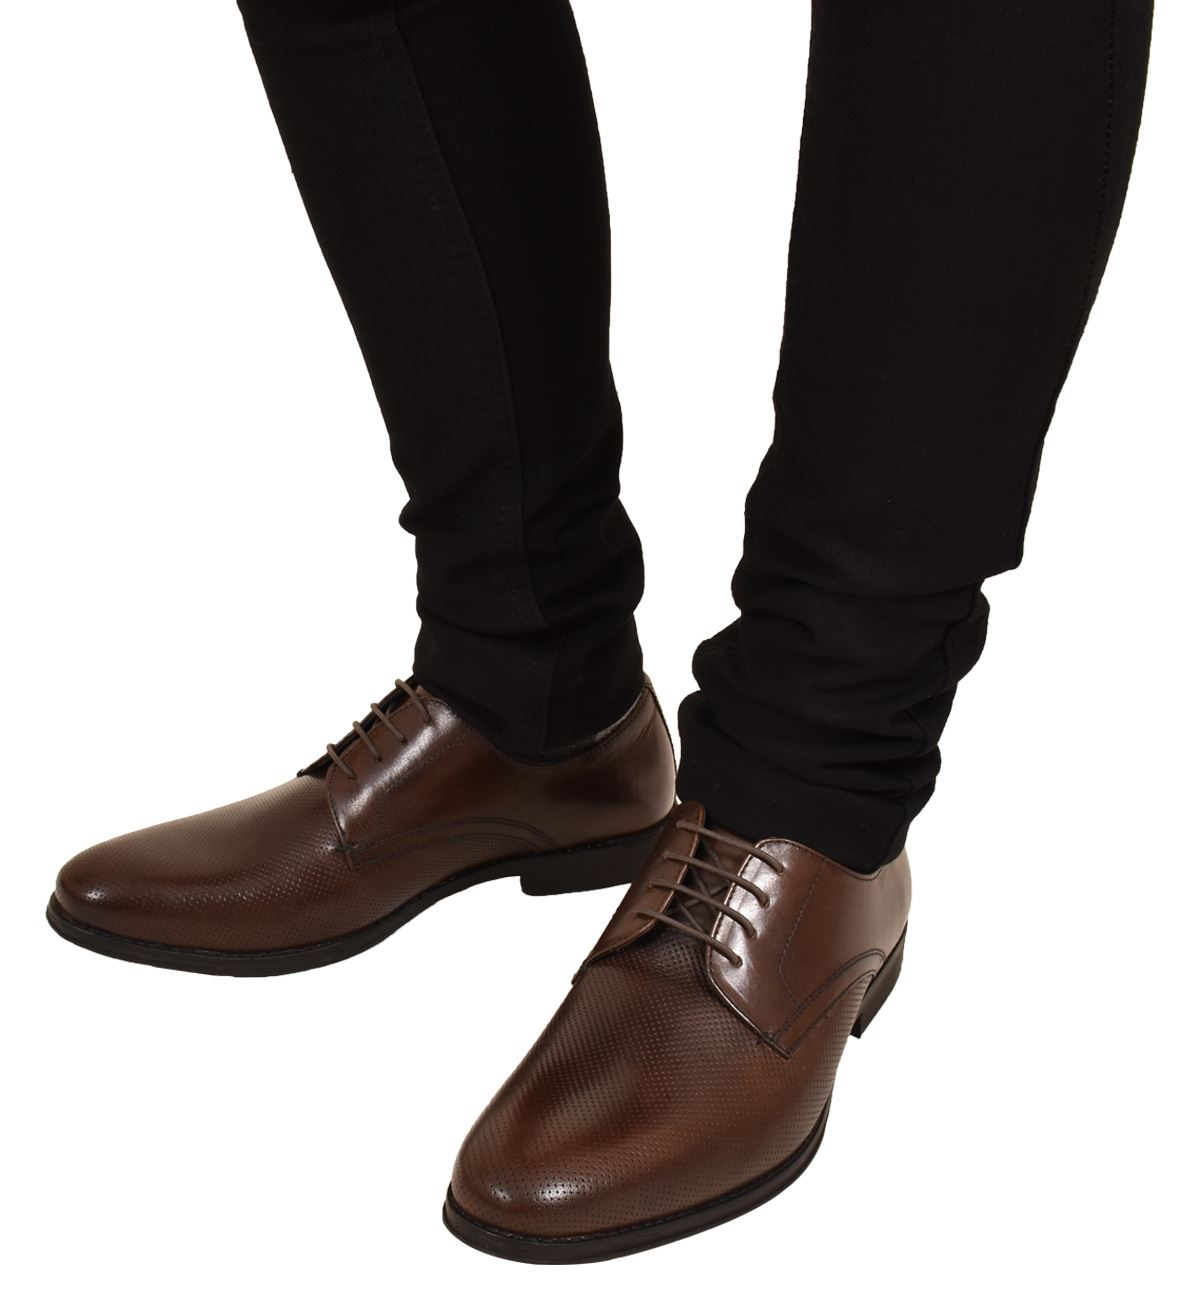 Mens-UK-Style-Leather-Lining-Formal-Office-Wedding-Smart-Work-Brogue-Shoes thumbnail 51